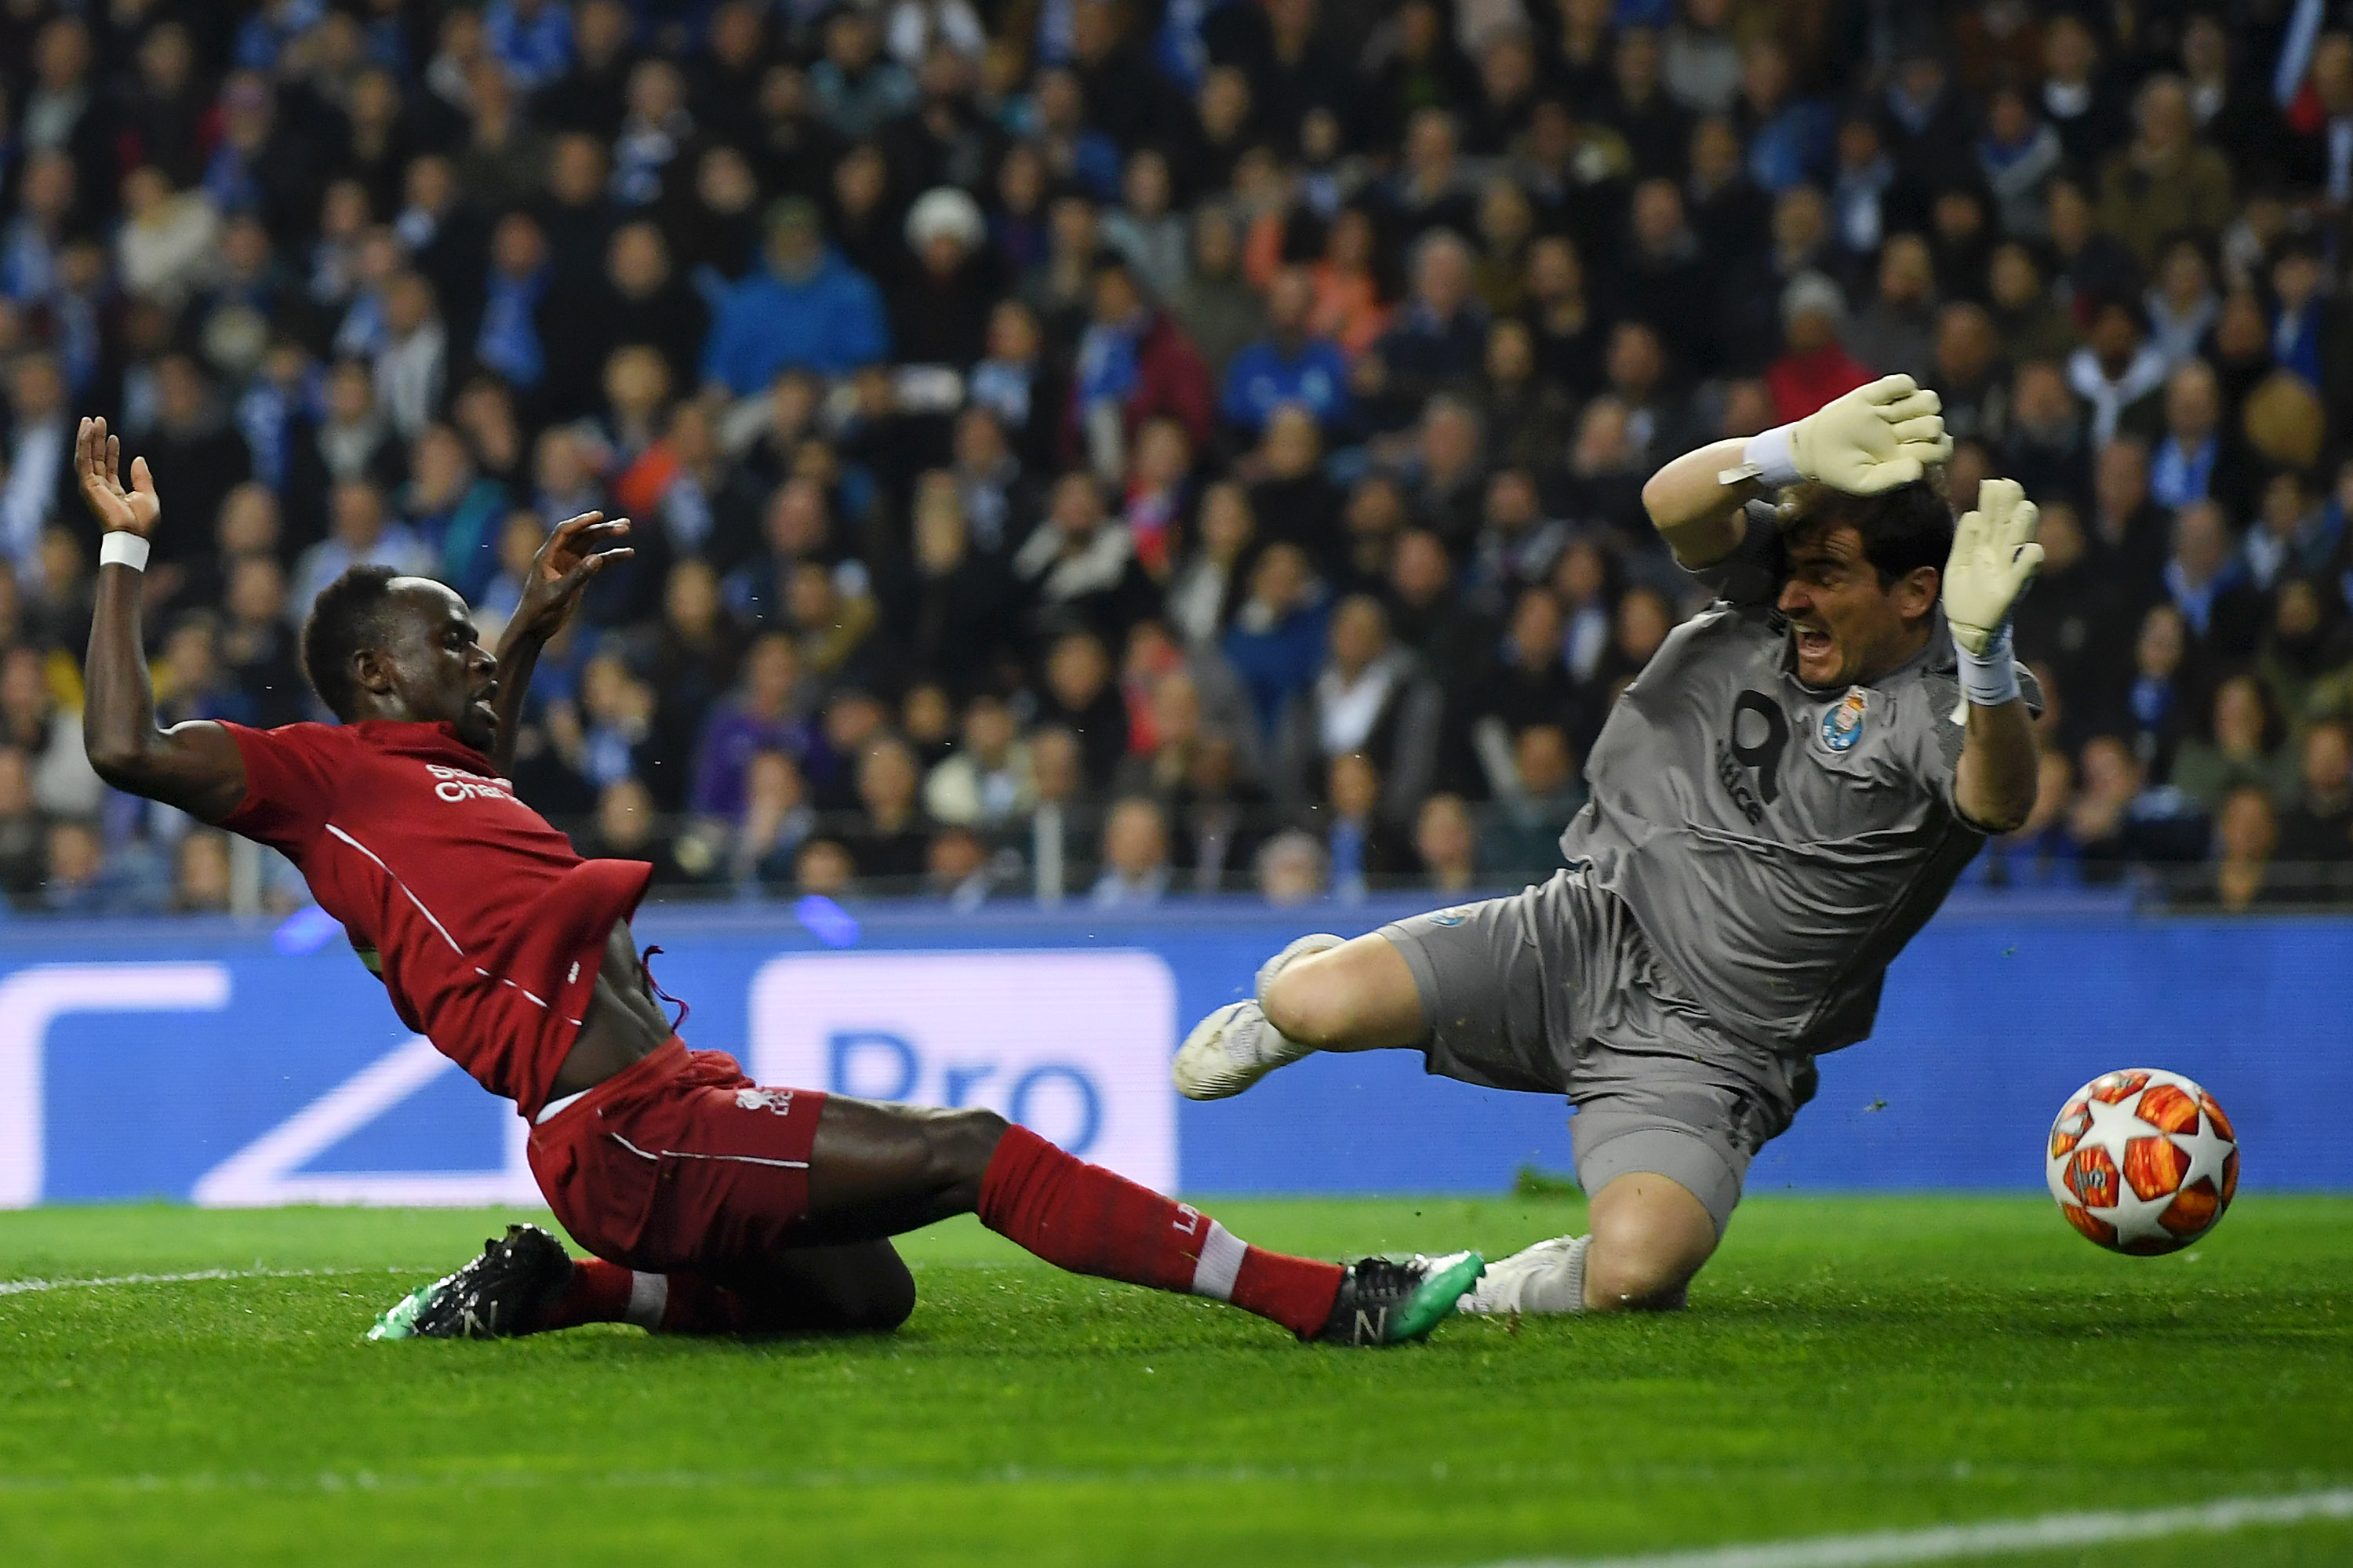 Porto 1, Liverpool 4 (1-6 agg.) - Match Recap: Porto Outclassed Again